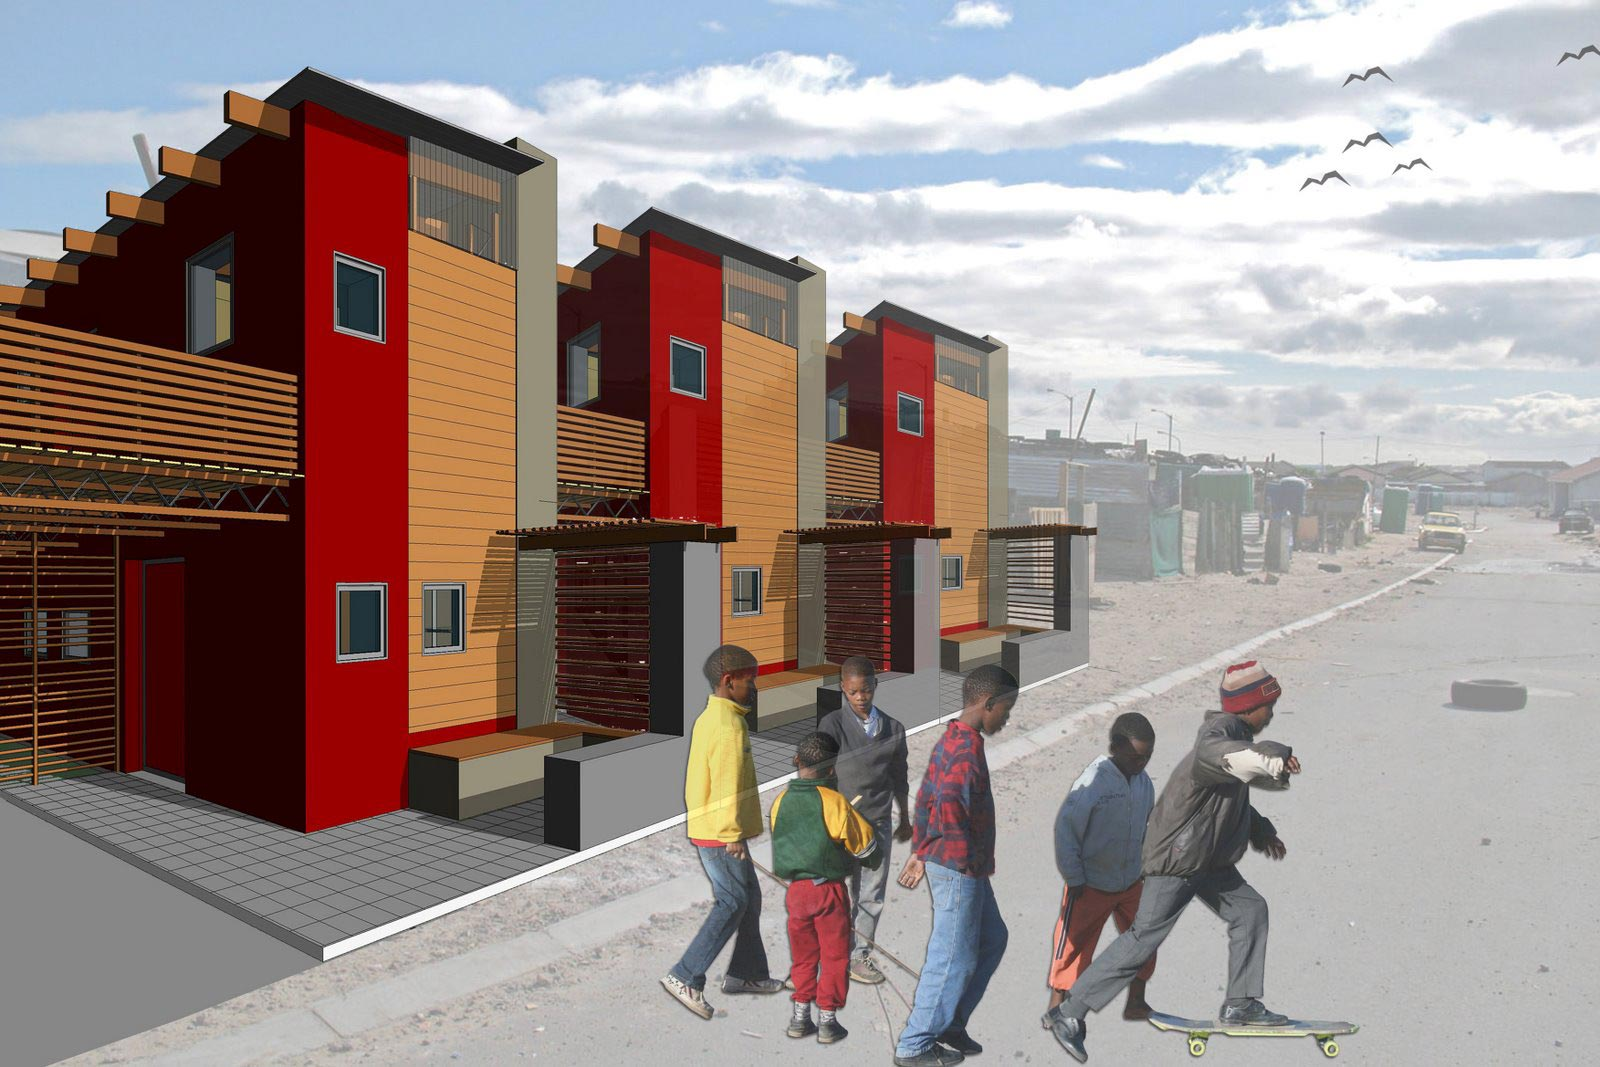 Design solution for low cost housing